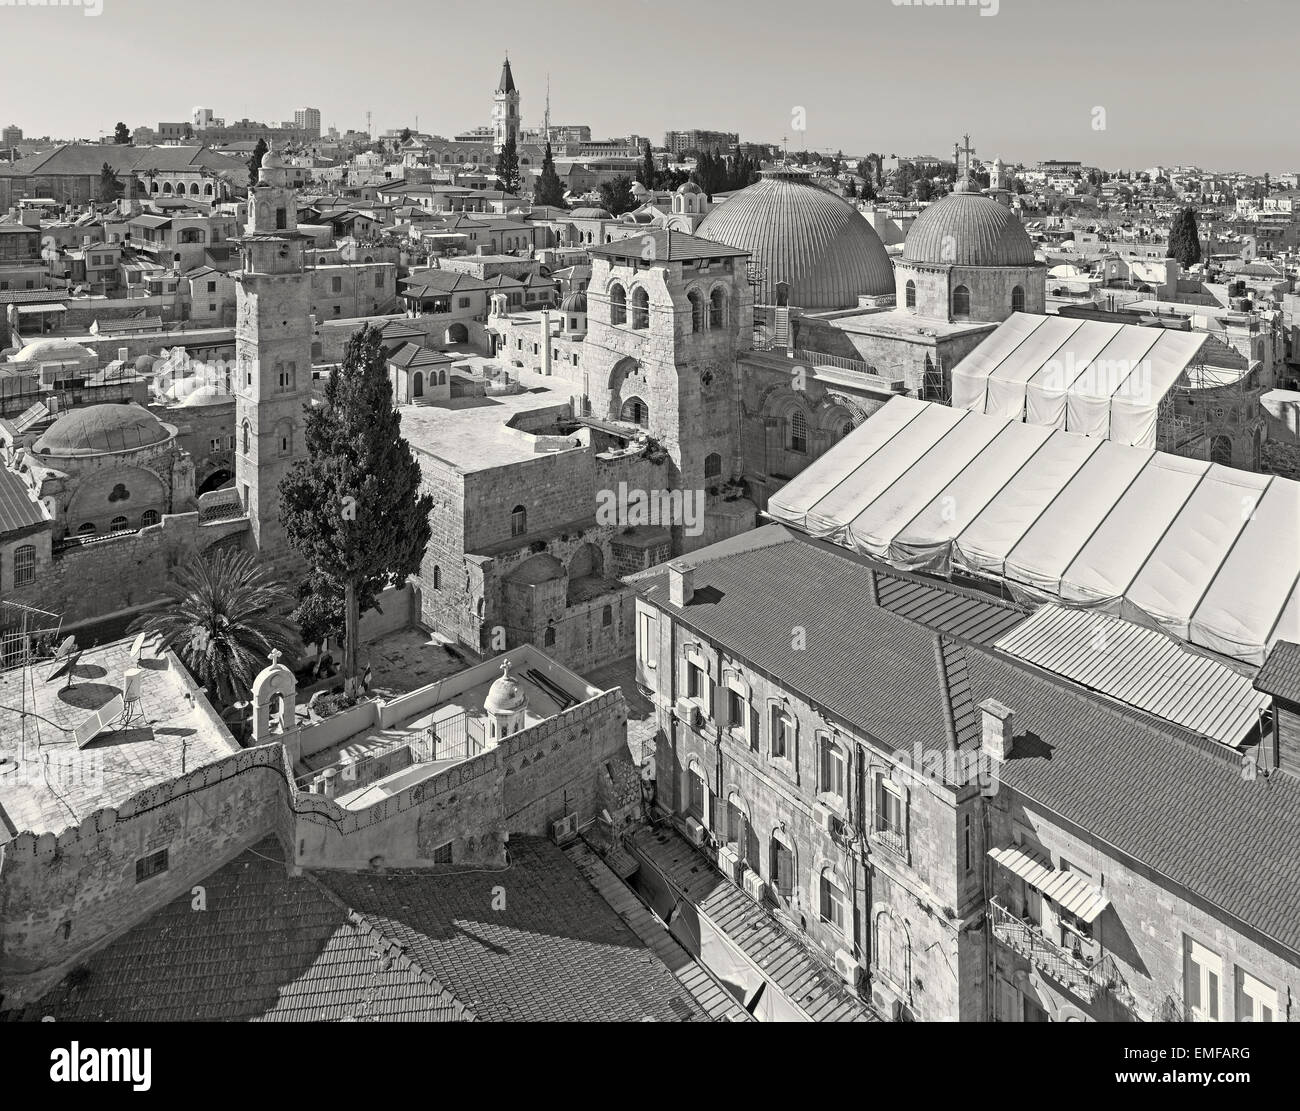 Jerusalem - Outlook over the old town with the Church of Holy Sepulchre. - Stock Image